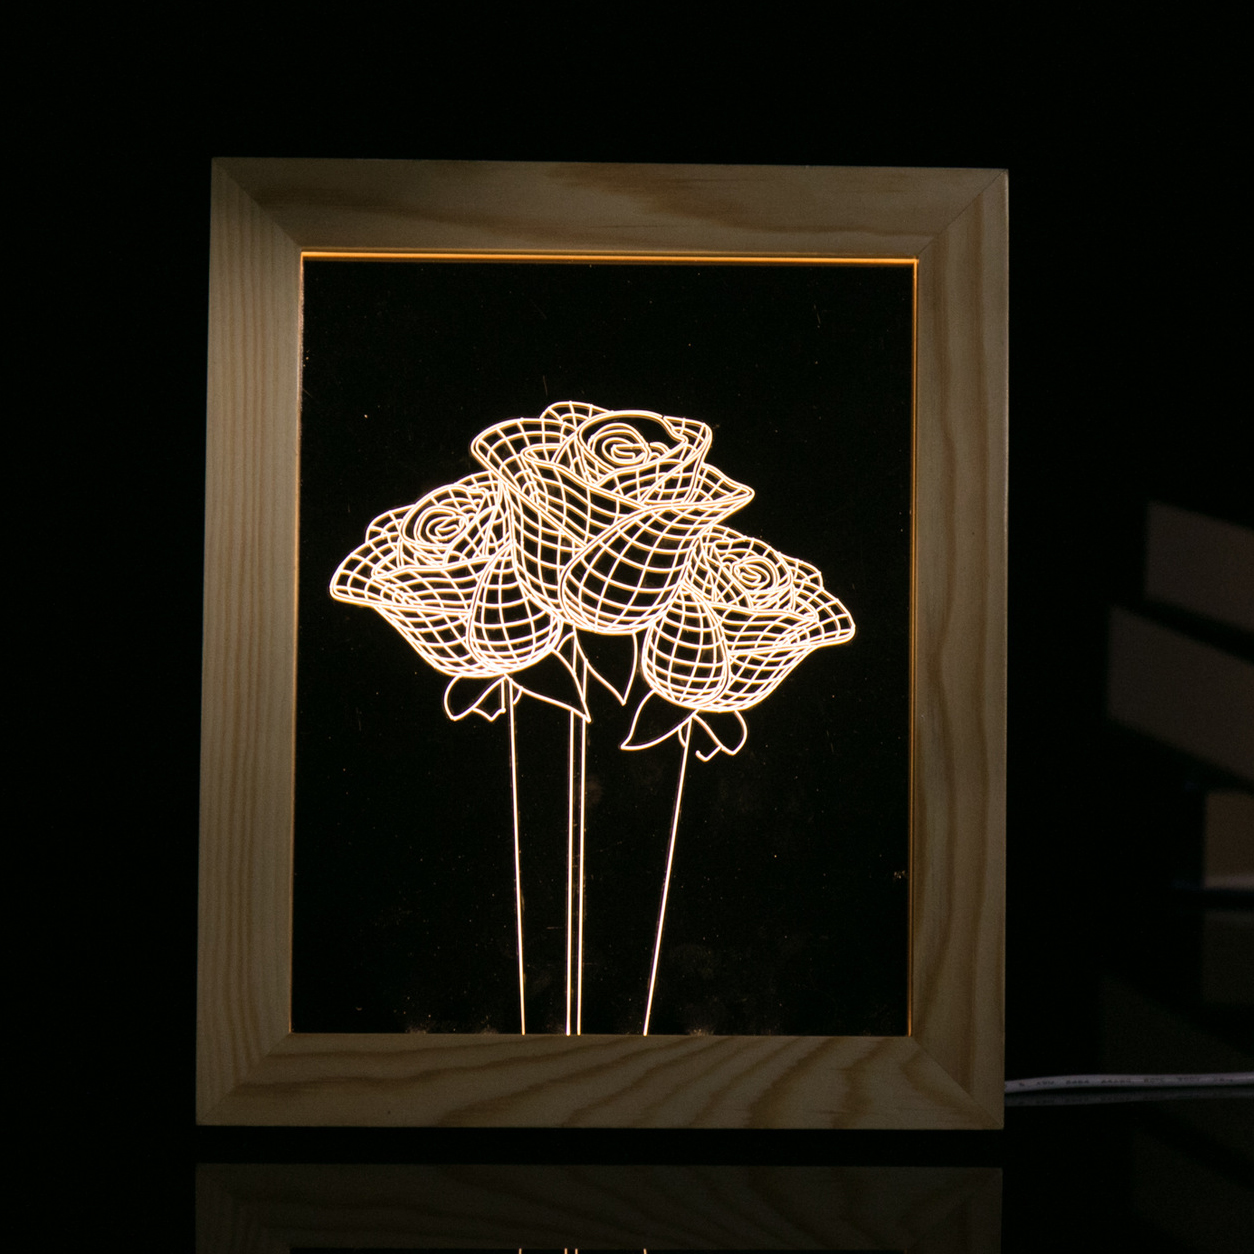 KCASA FL-723 3D Photo Frame Illuminative LED Night Light Wooden Rose Desktop Decorative USB Lamp For Bedroom Art Decor Christmas Gifts